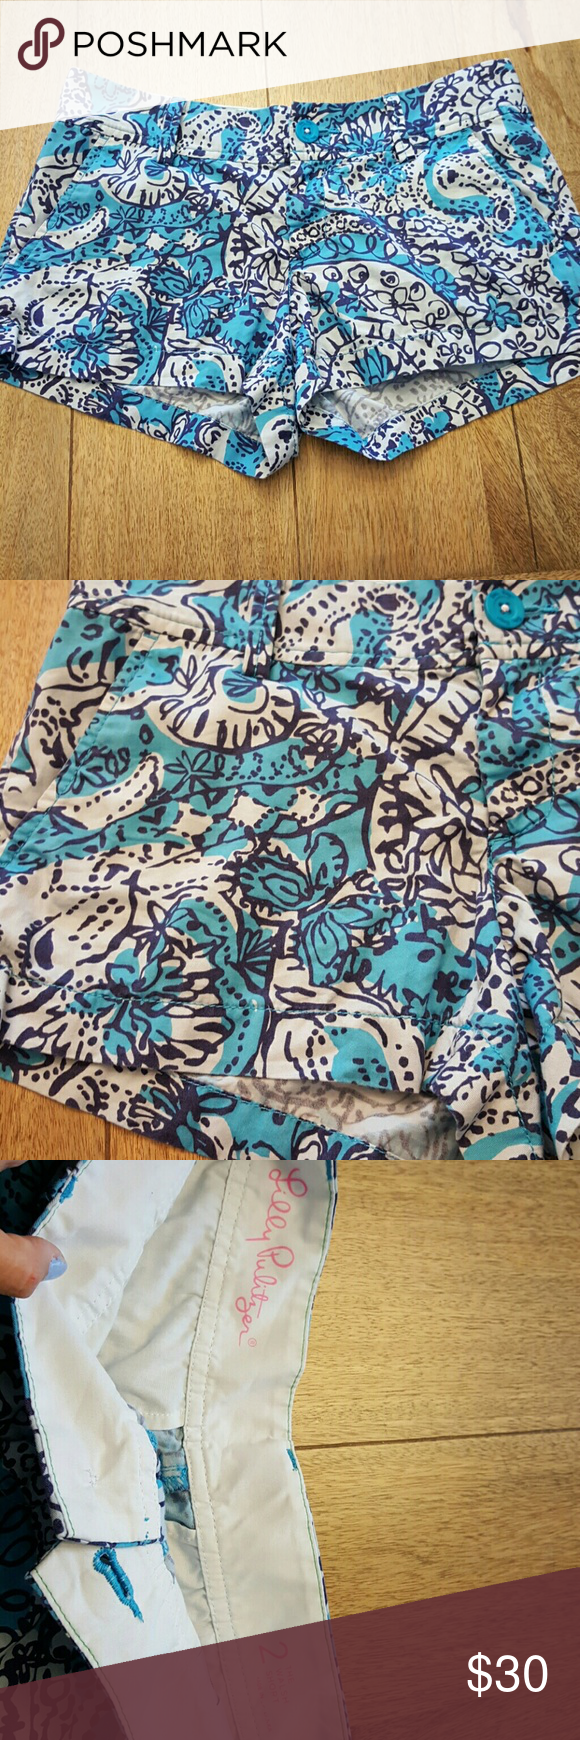 Lilly Pulitzer Walsh Shorts Butterflies Hidden butterflies and flowers. Light wear, just shows signs on the inside imprint, see 3rd photo. But great condition! Lilly Pulitzer Shorts